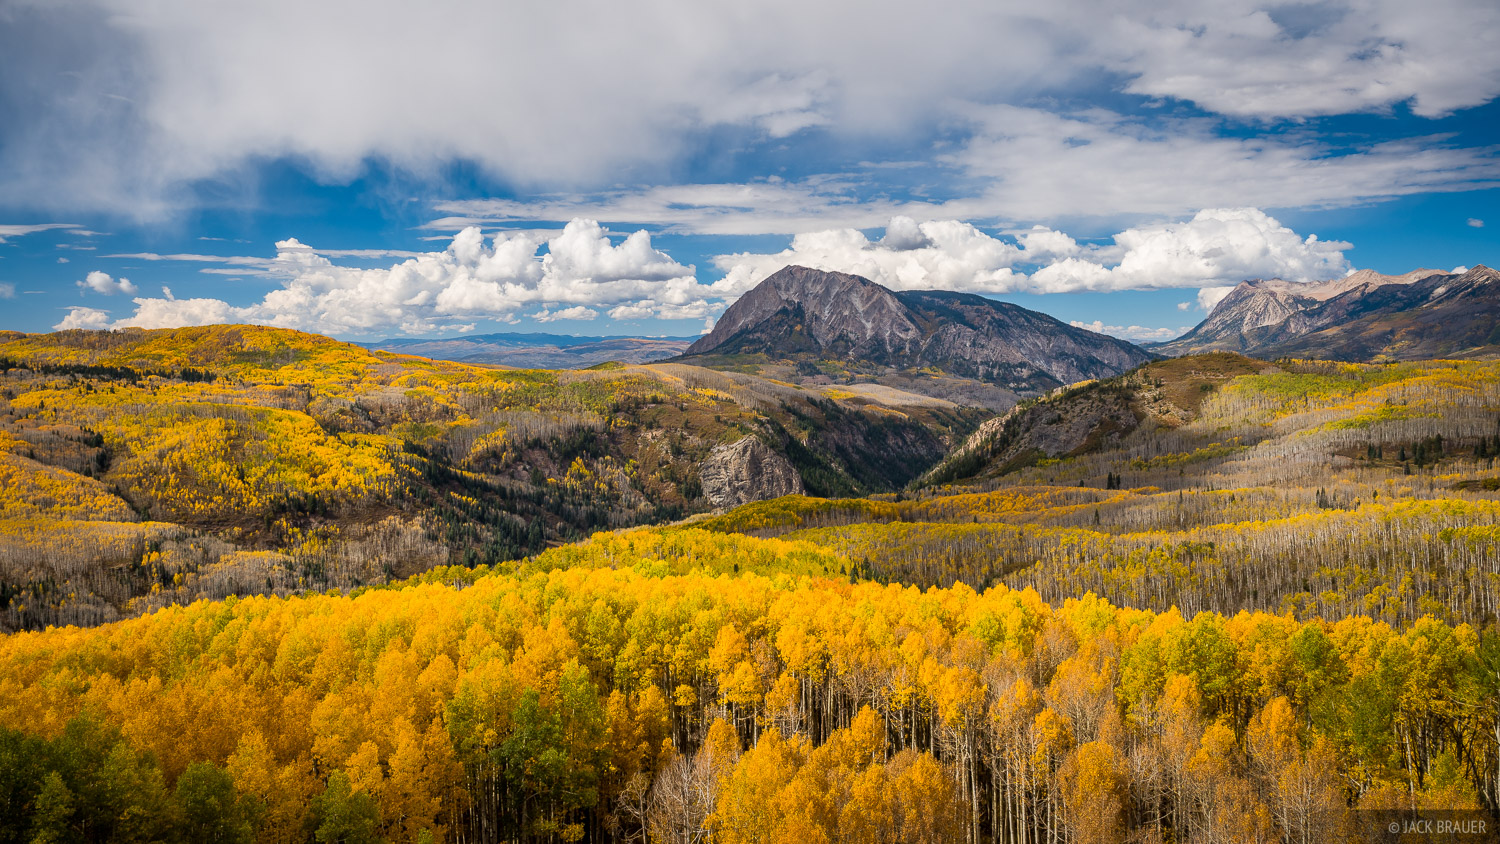 Colorado, Elk Mountains, Kebler Pass, Marcellina, aspens, October, Raggeds Wilderness, photo